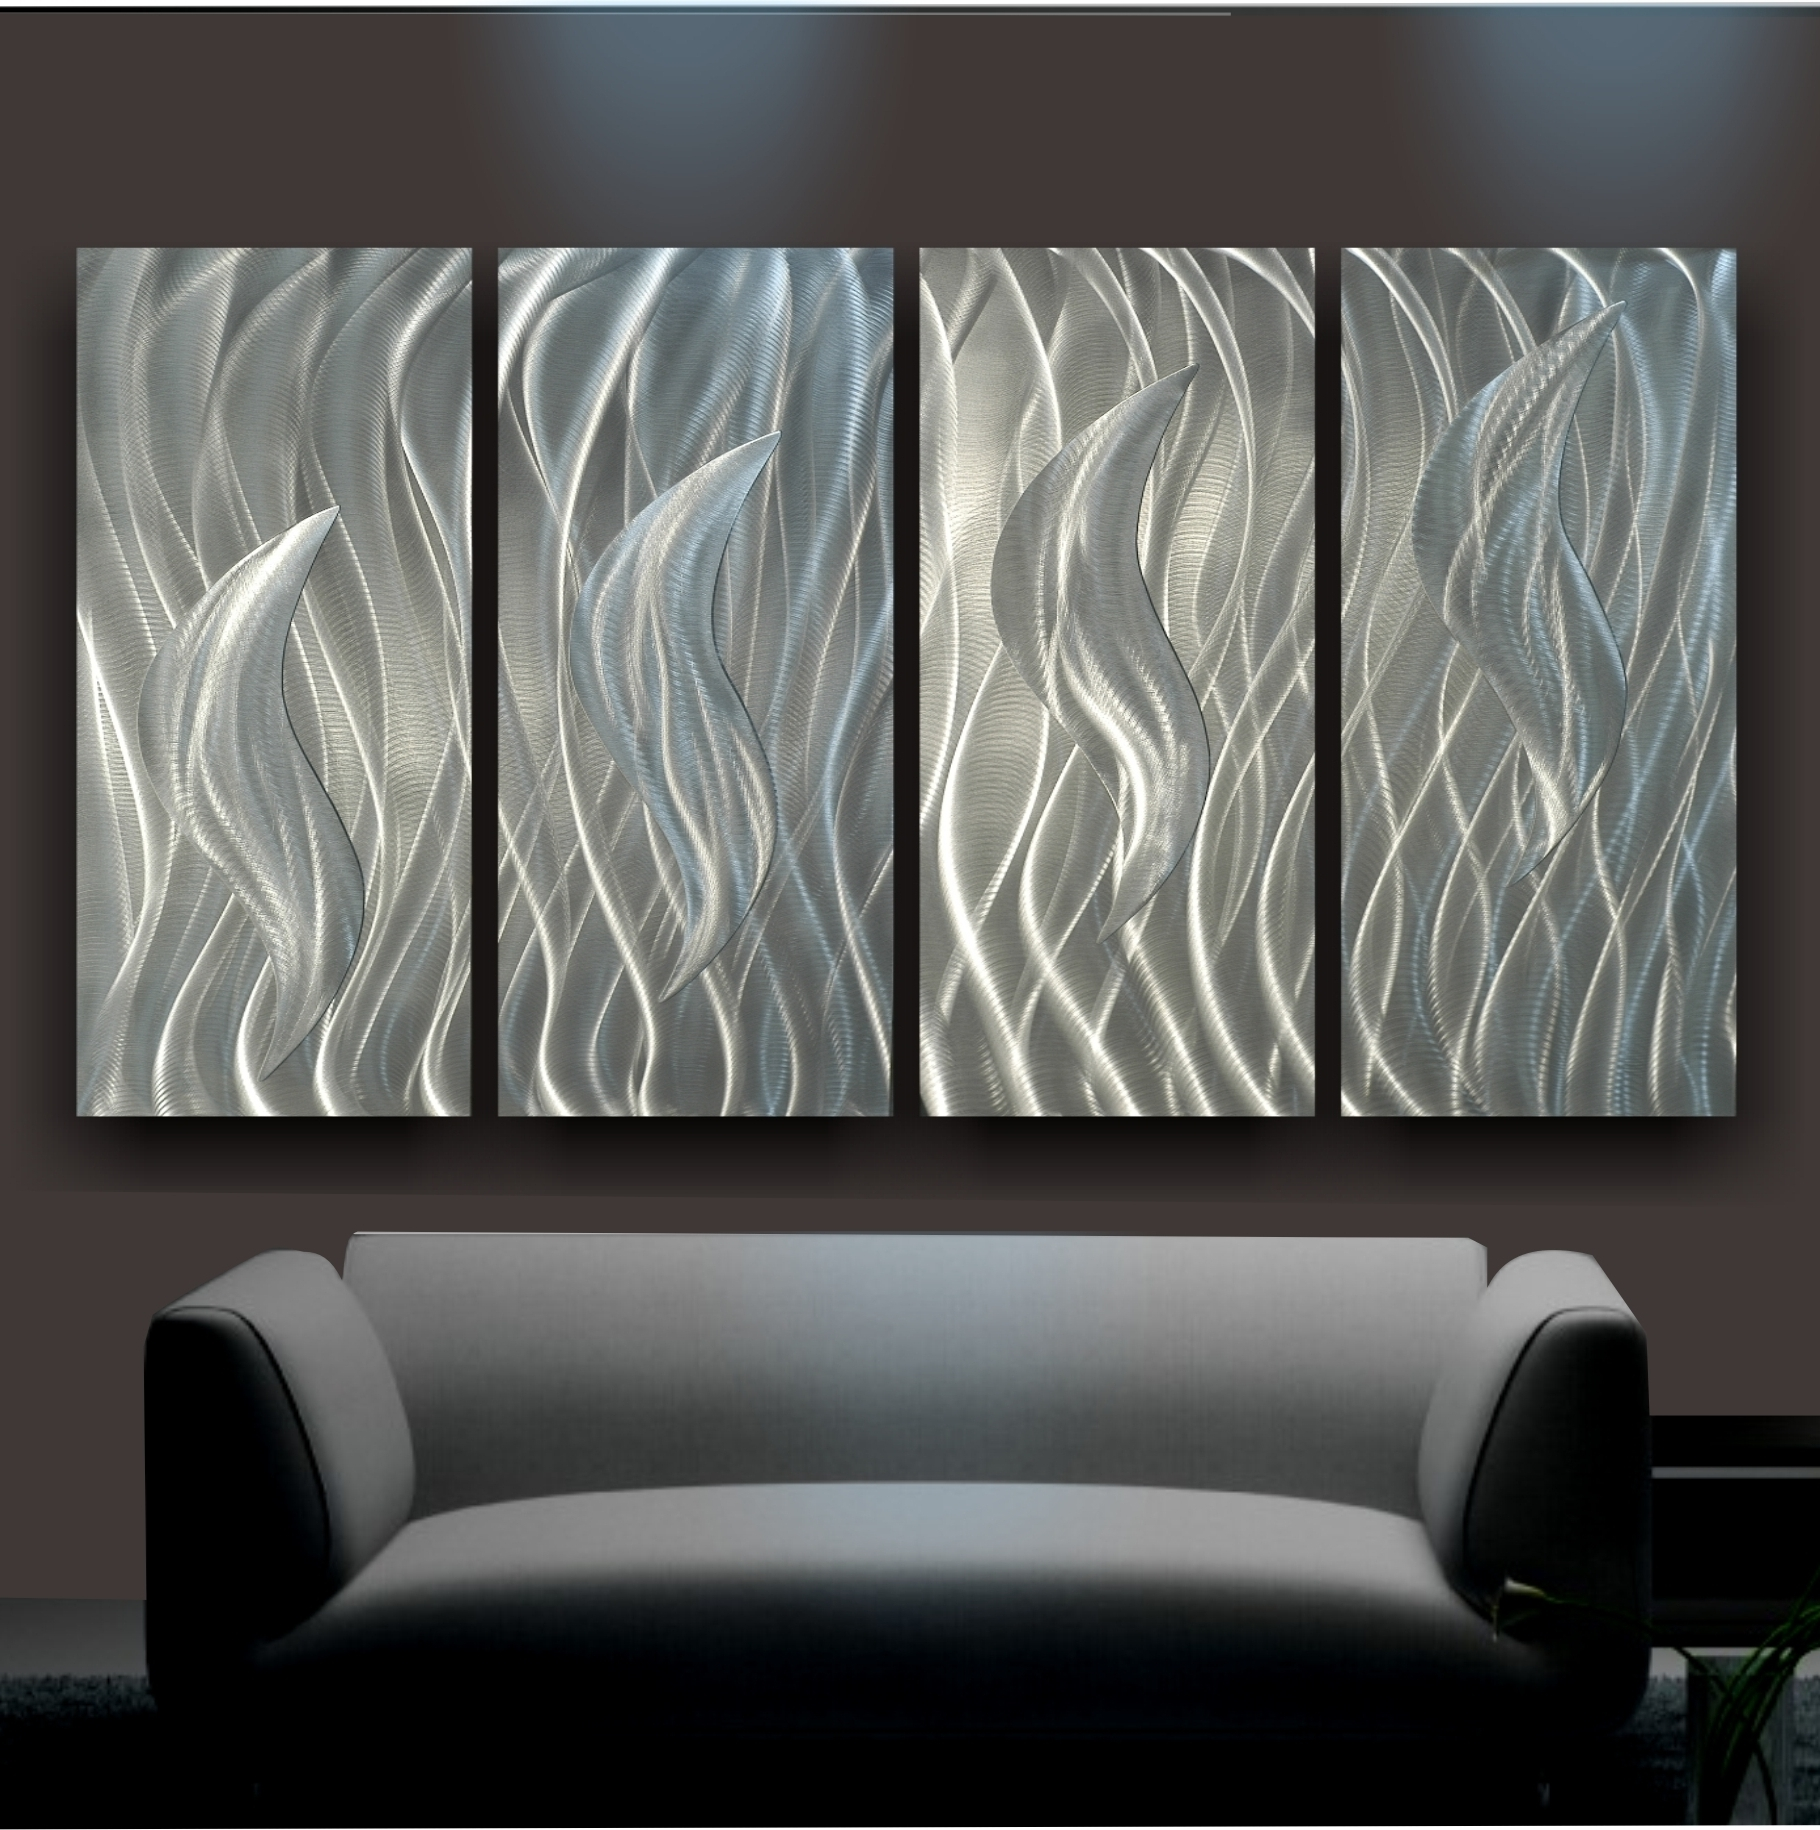 Steel Wall Surface Fine Art Is A Contemporary Sort Of Art Work Within Most Recently Released Unique Modern Wall Art (View 10 of 15)